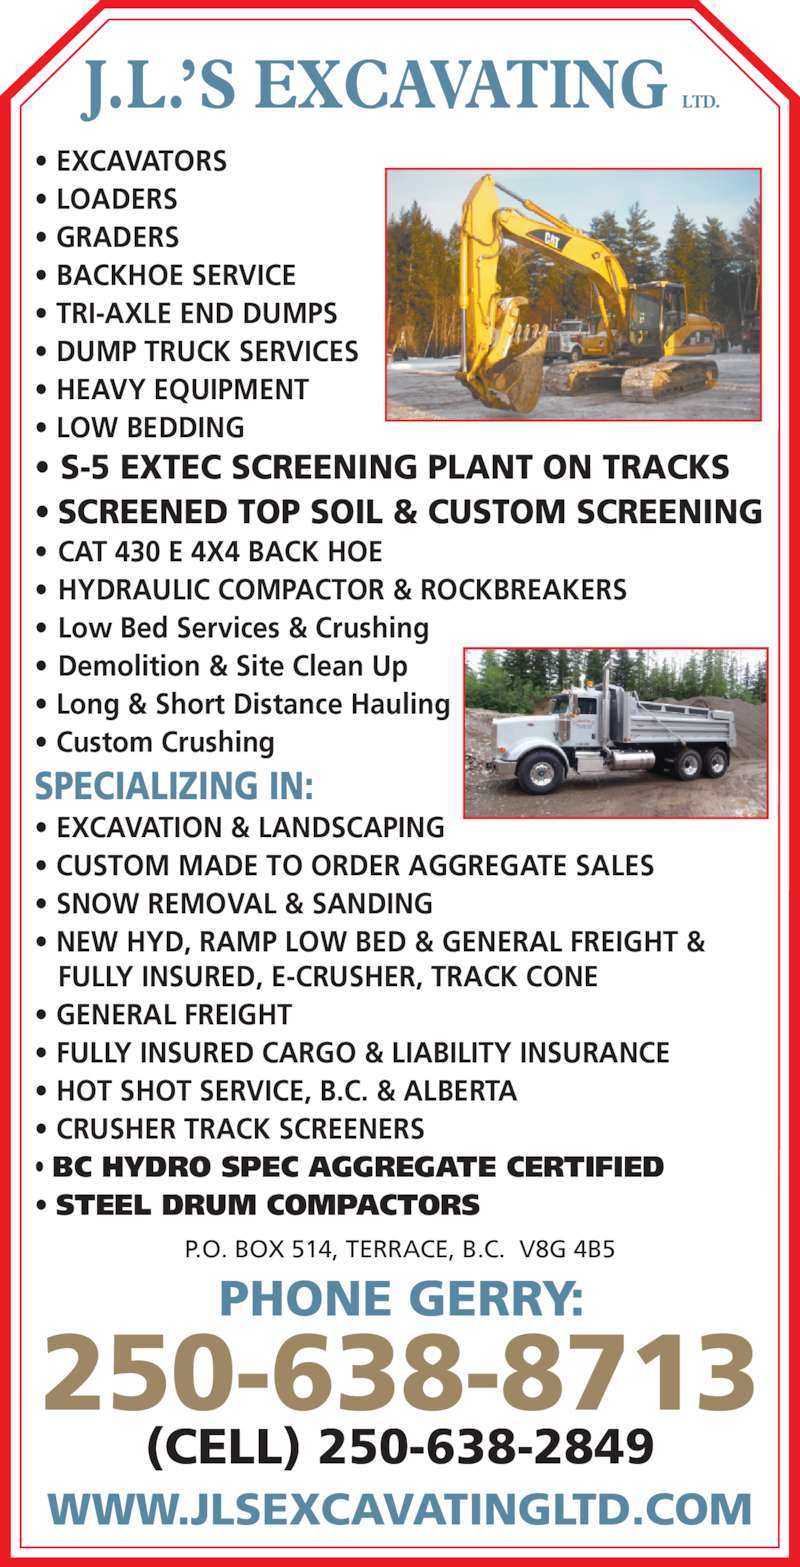 J L's Excavating Ltd (250-638-8713) - Display Ad - • EXCAVATORS • LOADERS • GRADERS • BACKHOE SERVICE • TRI-AXLE END DUMPS • DUMP TRUCK SERVICES • HEAVY EQUIPMENT • LOW BEDDING • S-5 EXTEC SCREENING PLANT ON TRACKS • SCREENED TOP SOIL & CUSTOM SCREENING • CAT 430 E 4X4 BACK HOE • HYDRAULIC COMPACTOR & ROCKBREAKERS • Low Bed Services & Crushing • Demolition & Site Clean Up • Long & Short Distance Hauling • Custom Crushing SPECIALIZING IN: • EXCAVATION & LANDSCAPING • CUSTOM MADE TO ORDER AGGREGATE SALES • SNOW REMOVAL & SANDING • NEW HYD, RAMP LOW BED & GENERAL FREIGHT &    FULLY INSURED, E-CRUSHER, TRACK CONE • GENERAL FREIGHT • FULLY INSURED CARGO & LIABILITY INSURANCE • HOT SHOT SERVICE, B.C. & ALBERTA • CRUSHER TRACK SCREENERS • BC HYDRO SPEC AGGREGATE CERTIFIED • STEEL DRUM COMPACTORS PHONE GERRY: 250-638-8713 (CELL) 250-638-2849 WWW.JLSEXCAVATINGLTD.COM P.O. BOX 514, TERRACE, B.C.  V8G 4B5 J.L.'S EXCAVATING LTD. • EXCAVATORS • LOADERS • GRADERS • BACKHOE SERVICE • TRI-AXLE END DUMPS • DUMP TRUCK SERVICES • HEAVY EQUIPMENT • LOW BEDDING • S-5 EXTEC SCREENING PLANT ON TRACKS • SCREENED TOP SOIL & CUSTOM SCREENING • CAT 430 E 4X4 BACK HOE • HYDRAULIC COMPACTOR & ROCKBREAKERS • Low Bed Services & Crushing • Demolition & Site Clean Up • Long & Short Distance Hauling • Custom Crushing SPECIALIZING IN: • EXCAVATION & LANDSCAPING • CUSTOM MADE TO ORDER AGGREGATE SALES • SNOW REMOVAL & SANDING • NEW HYD, RAMP LOW BED & GENERAL FREIGHT &    FULLY INSURED, E-CRUSHER, TRACK CONE • GENERAL FREIGHT • FULLY INSURED CARGO & LIABILITY INSURANCE • HOT SHOT SERVICE, B.C. & ALBERTA • CRUSHER TRACK SCREENERS • BC HYDRO SPEC AGGREGATE CERTIFIED • STEEL DRUM COMPACTORS PHONE GERRY: 250-638-8713 (CELL) 250-638-2849 WWW.JLSEXCAVATINGLTD.COM P.O. BOX 514, TERRACE, B.C.  V8G 4B5 J.L.'S EXCAVATING LTD.